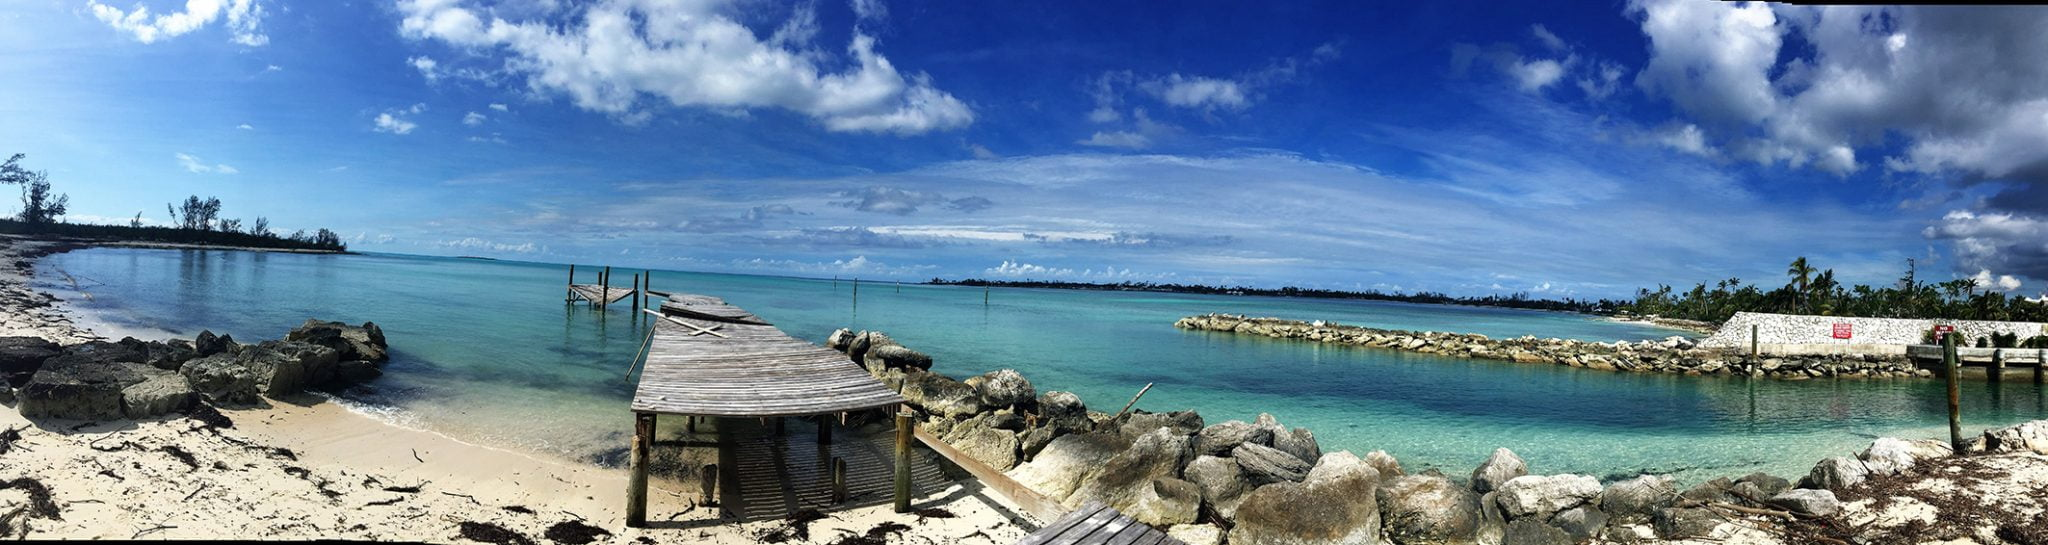 Broken jetty panorama, Bahamas, The Caribbean